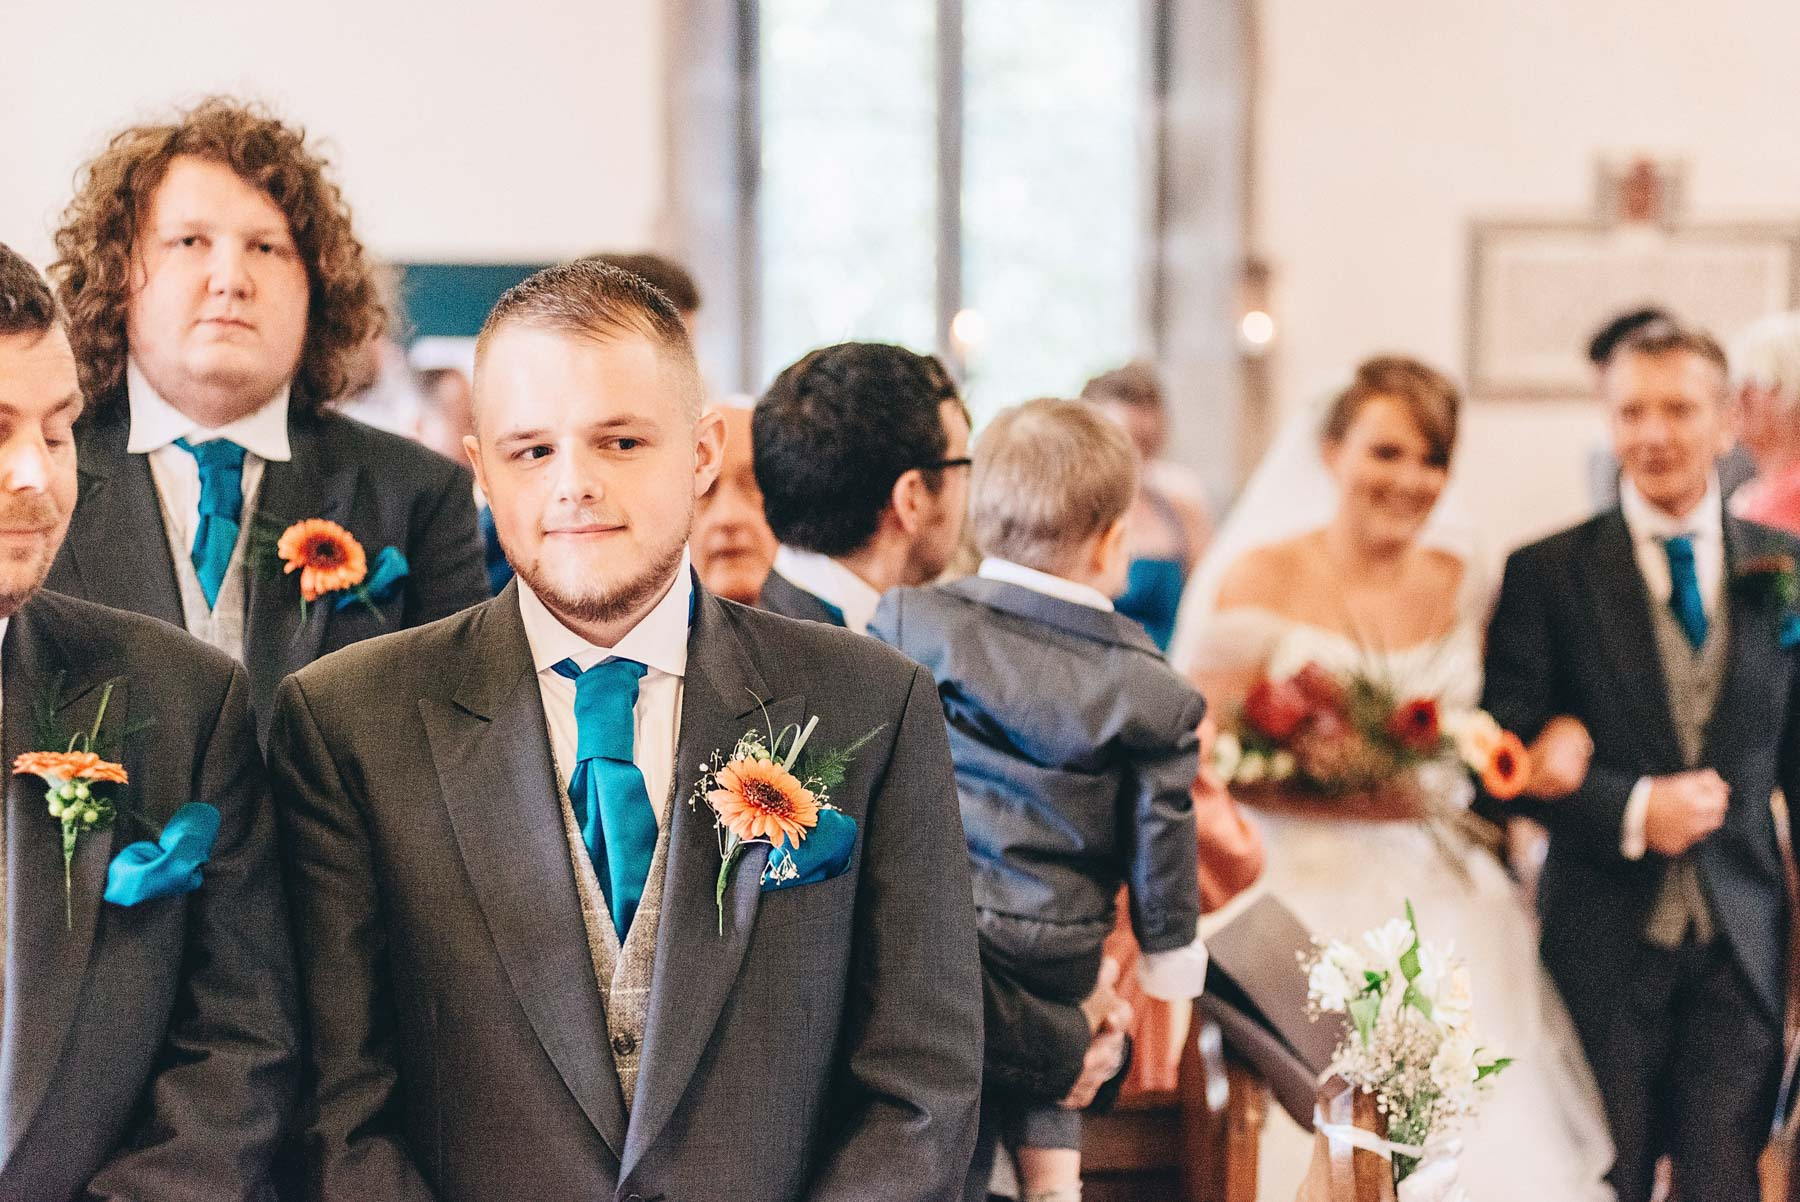 Groom waits nervously for bride walking up the aisle